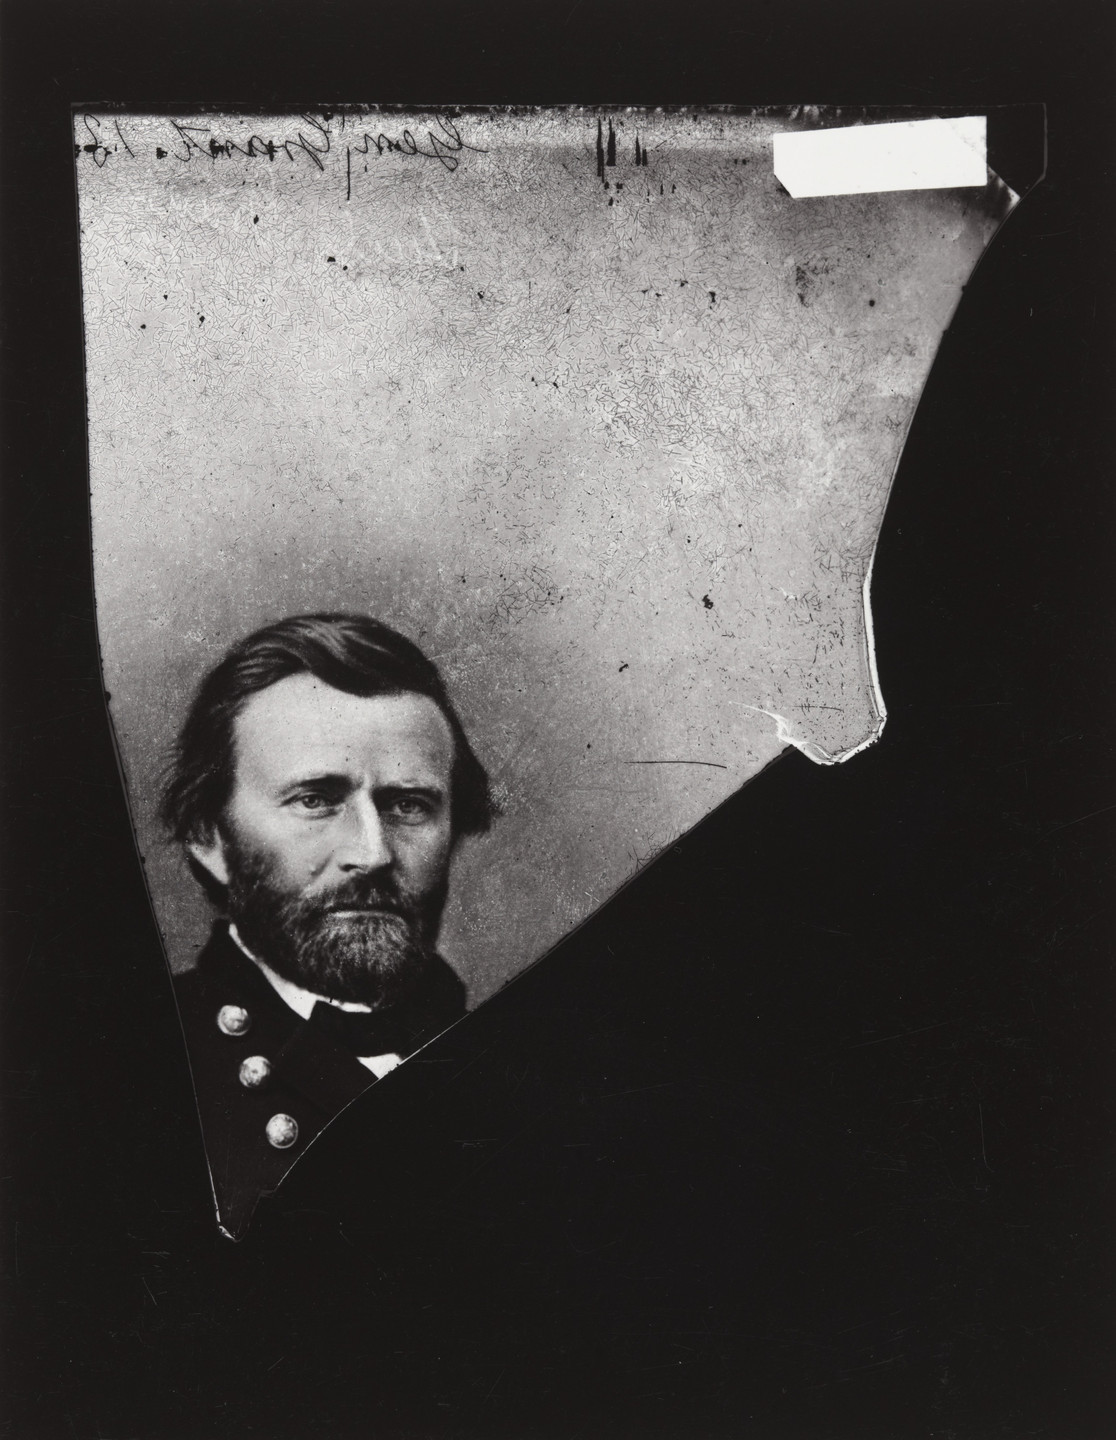 Mathew B. Brady (studio of). General Ulysses S. Grant. 1861-65